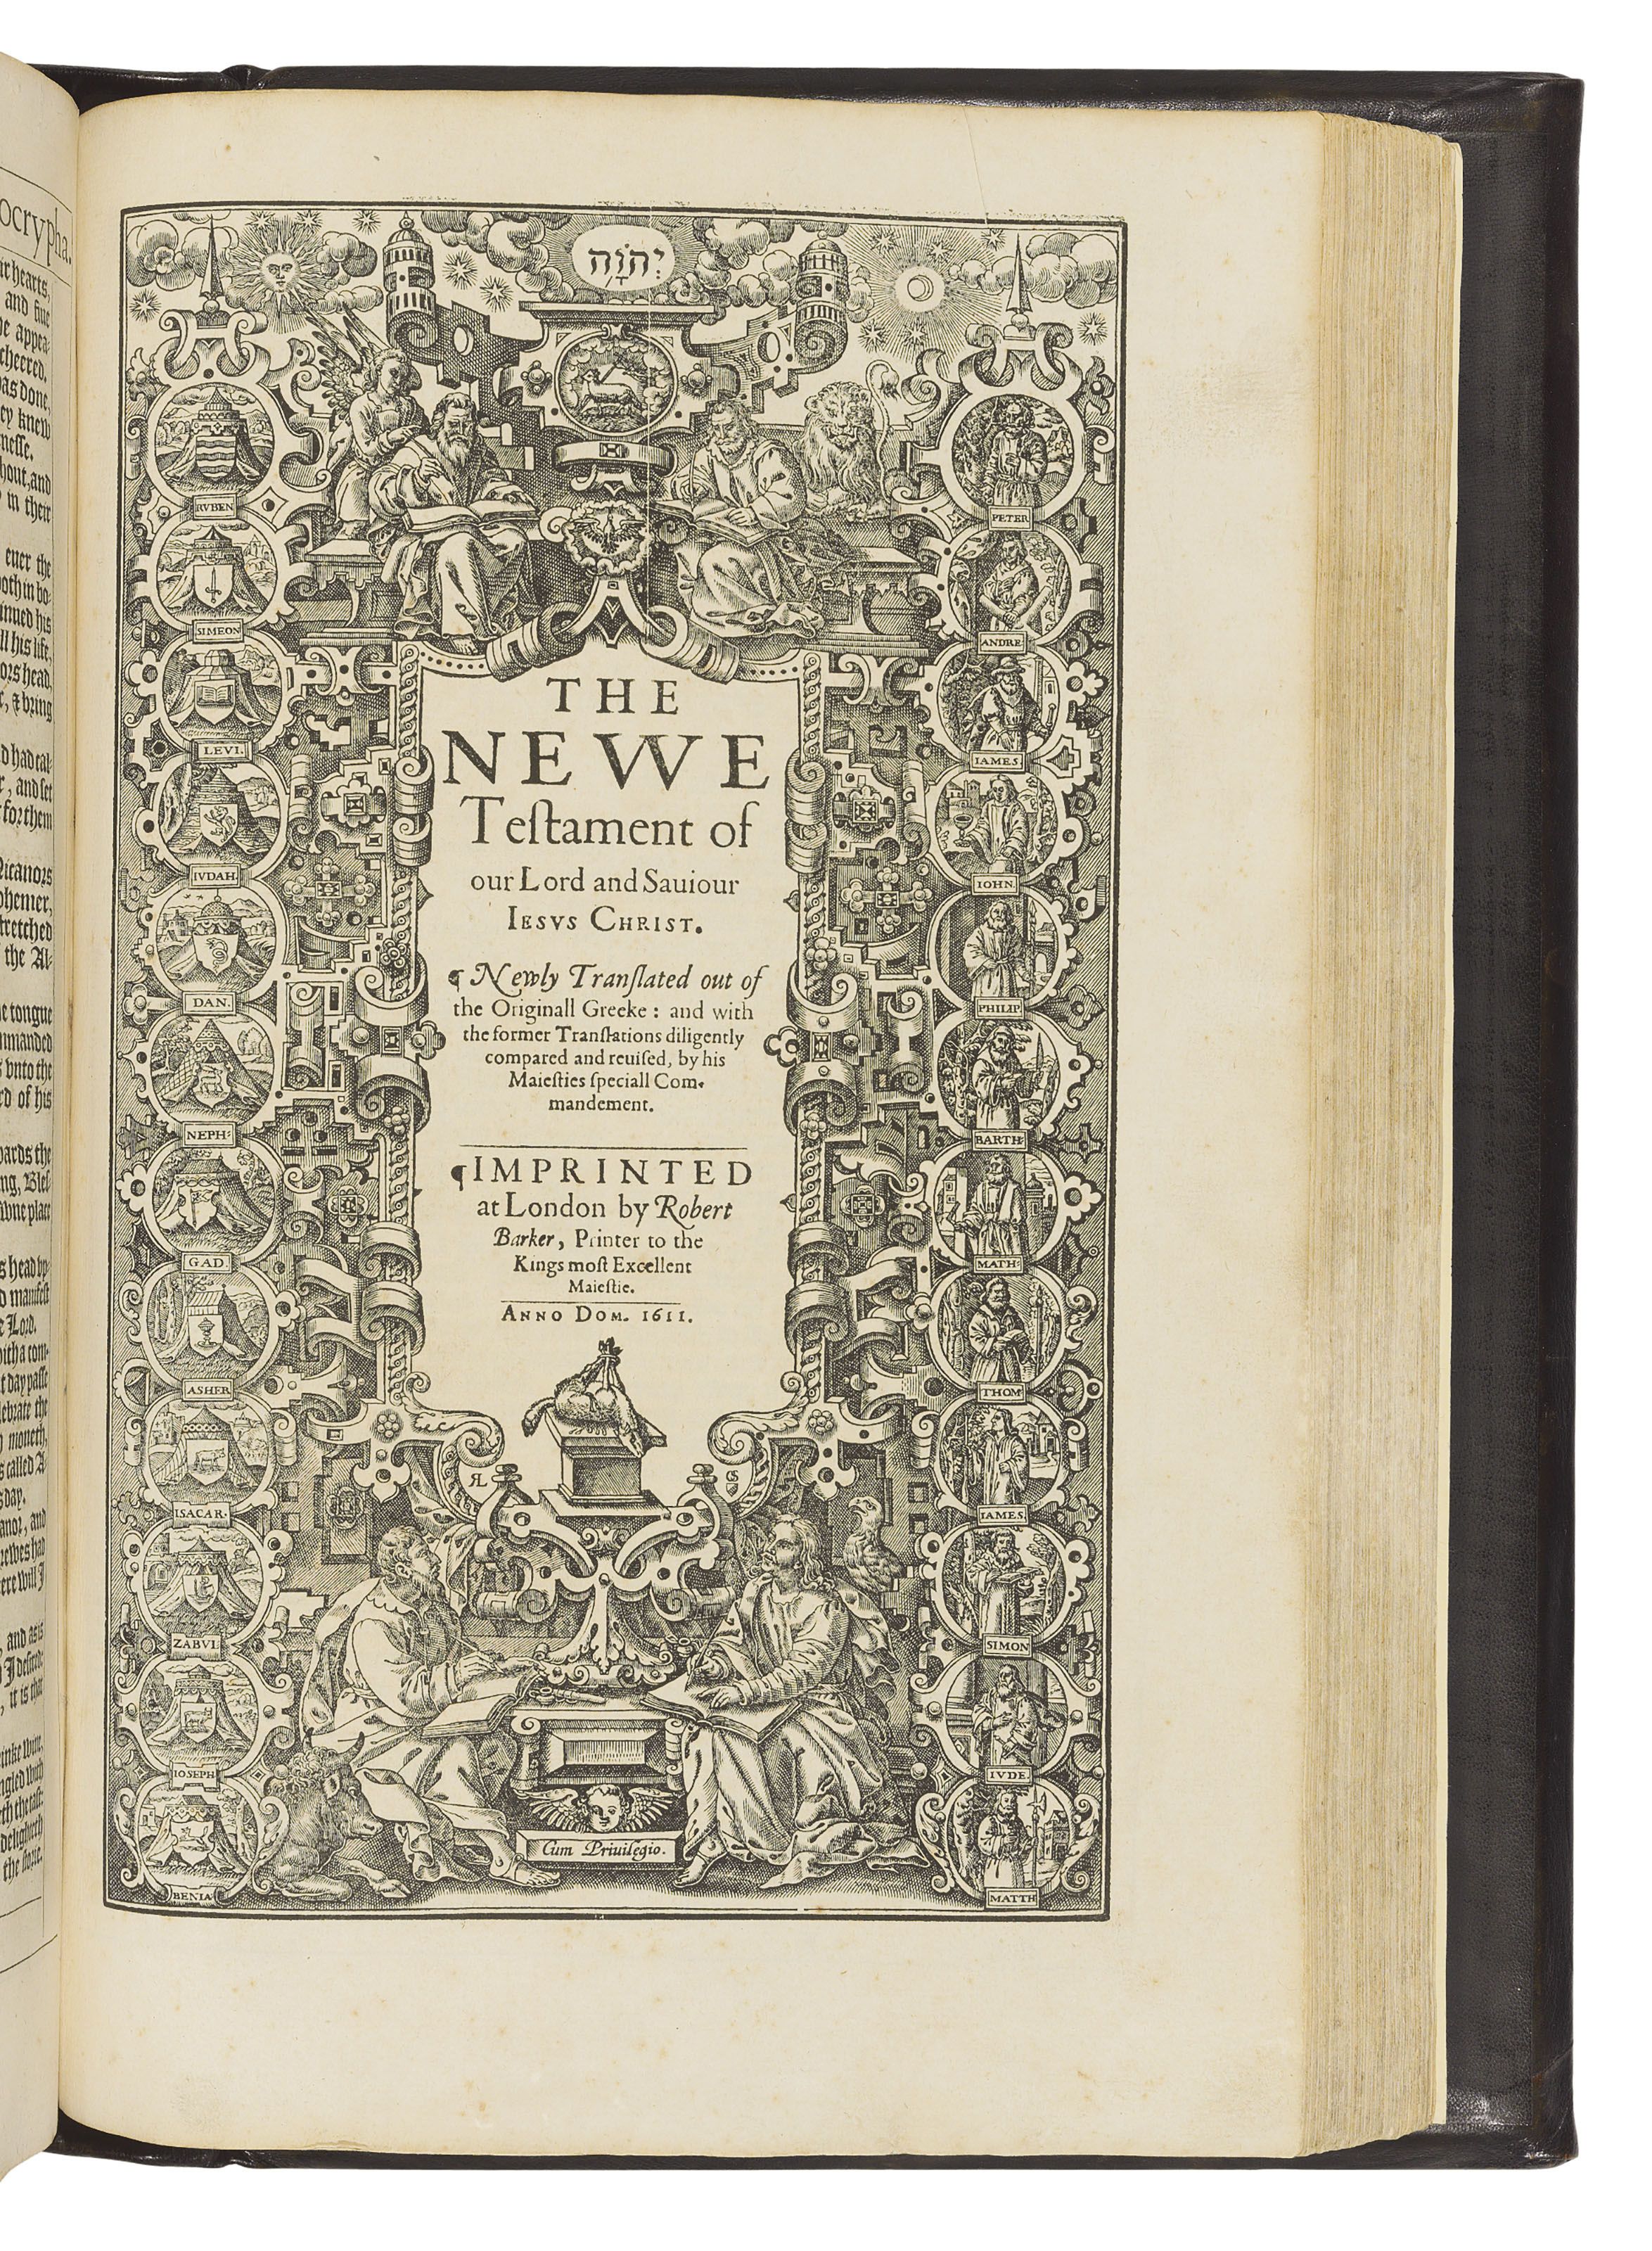 BIBLE, English. The Holy Bible, conteyning the Old Testament, and the New: Newly Translated out of the Originall Tongues: & with the former Translations diligently compared and revised by His Maiesties Speciall Commandment. Appointed to be read in Churches. London: Robert Barker, 1611.